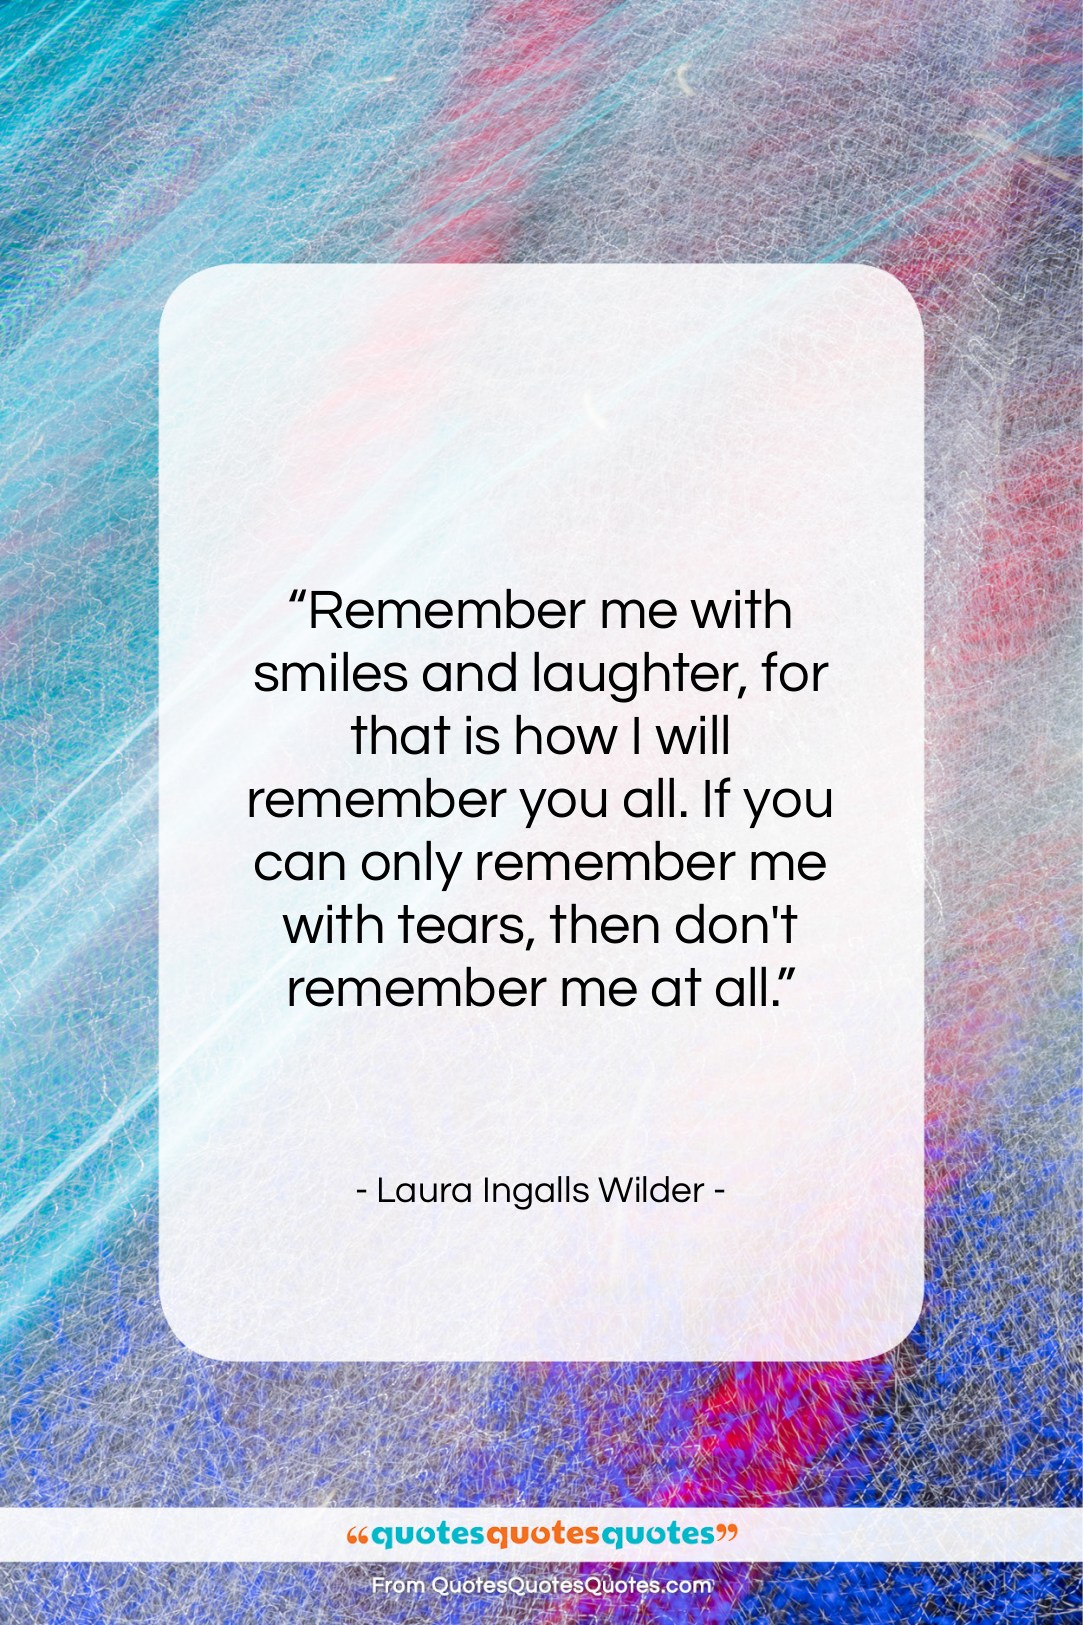 """Laura Ingalls Wilder quote: """"Remember me with smiles and laughter, for…""""- at QuotesQuotesQuotes.com"""